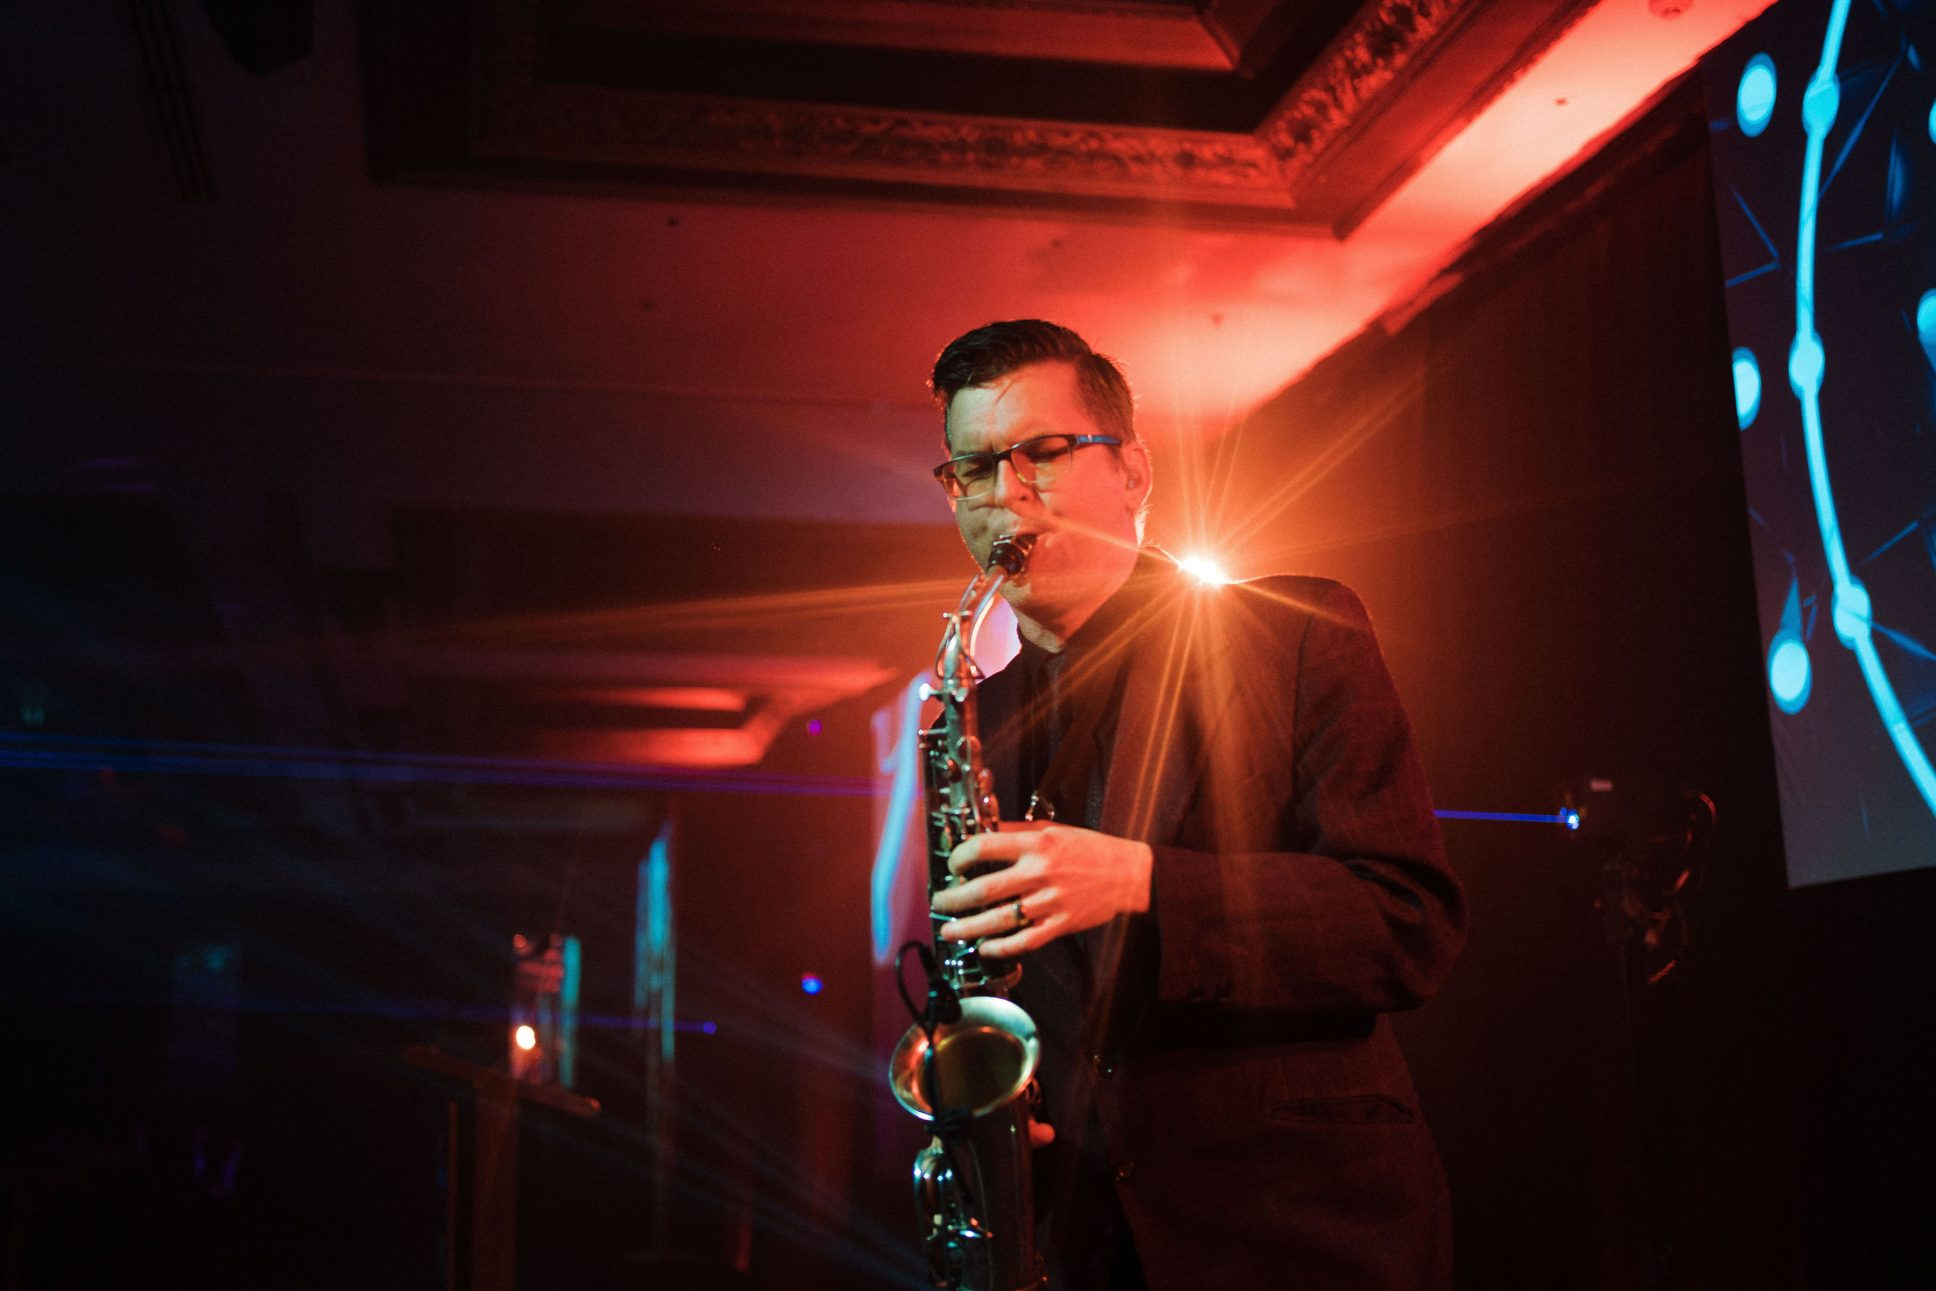 Saxophone player at Auckland's Westpac business awards held at cordis.